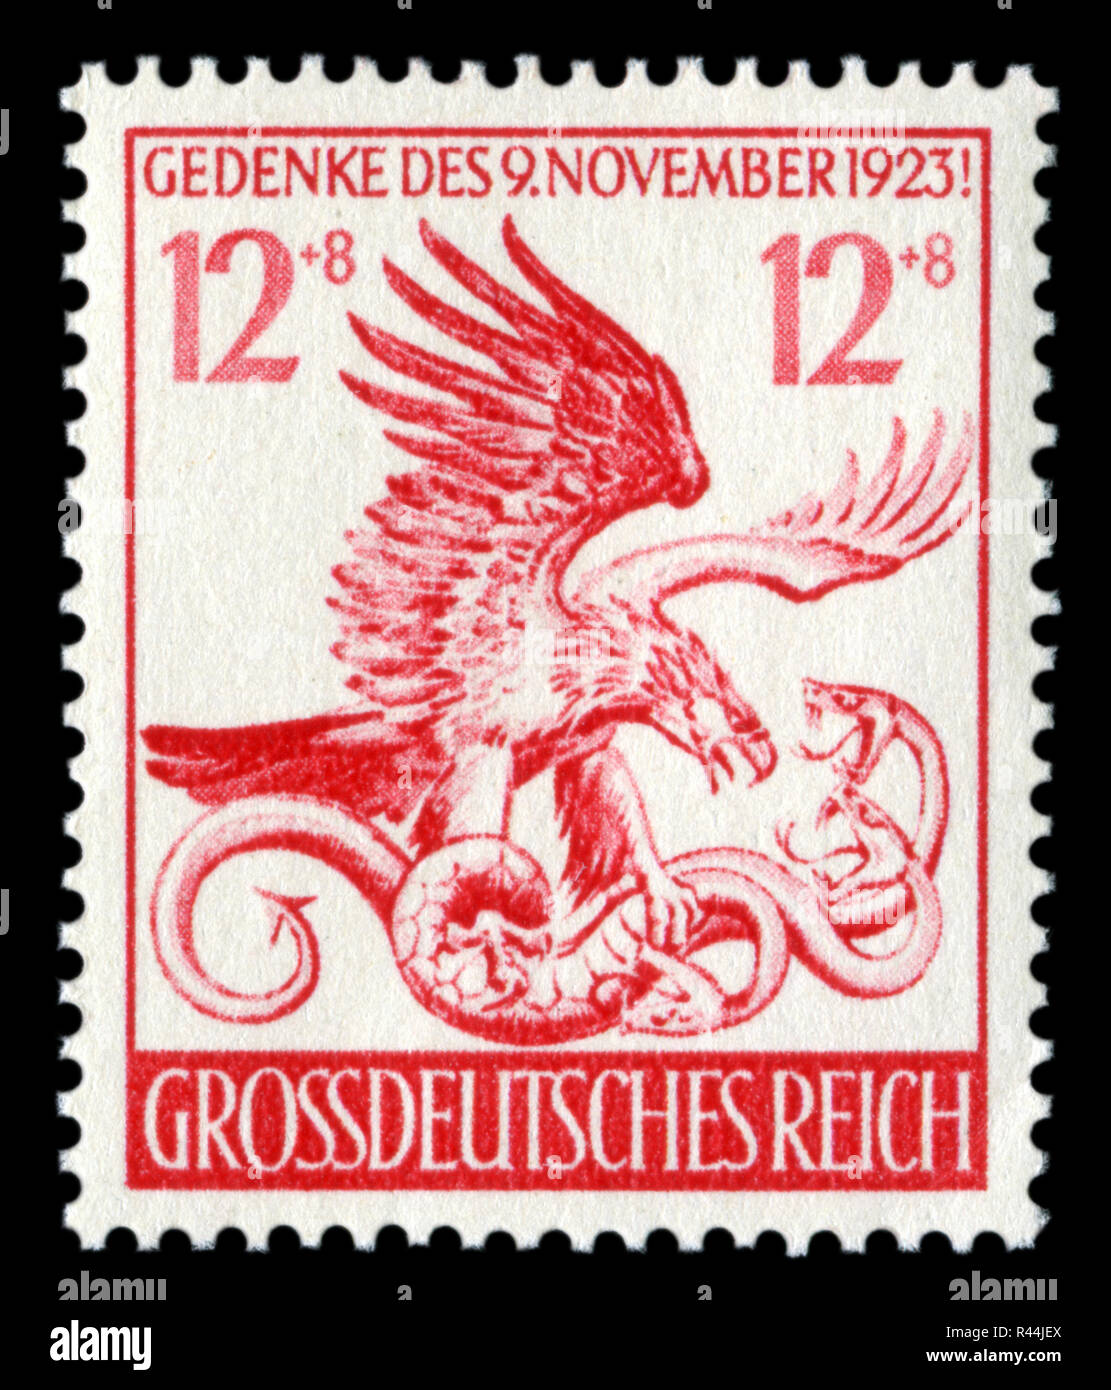 German historical stamp: 21st anniversary of 'The beer putsch'. The eagle that defeated the three-headed serpent. 1944, Germany, the Third Reich. - Stock Image